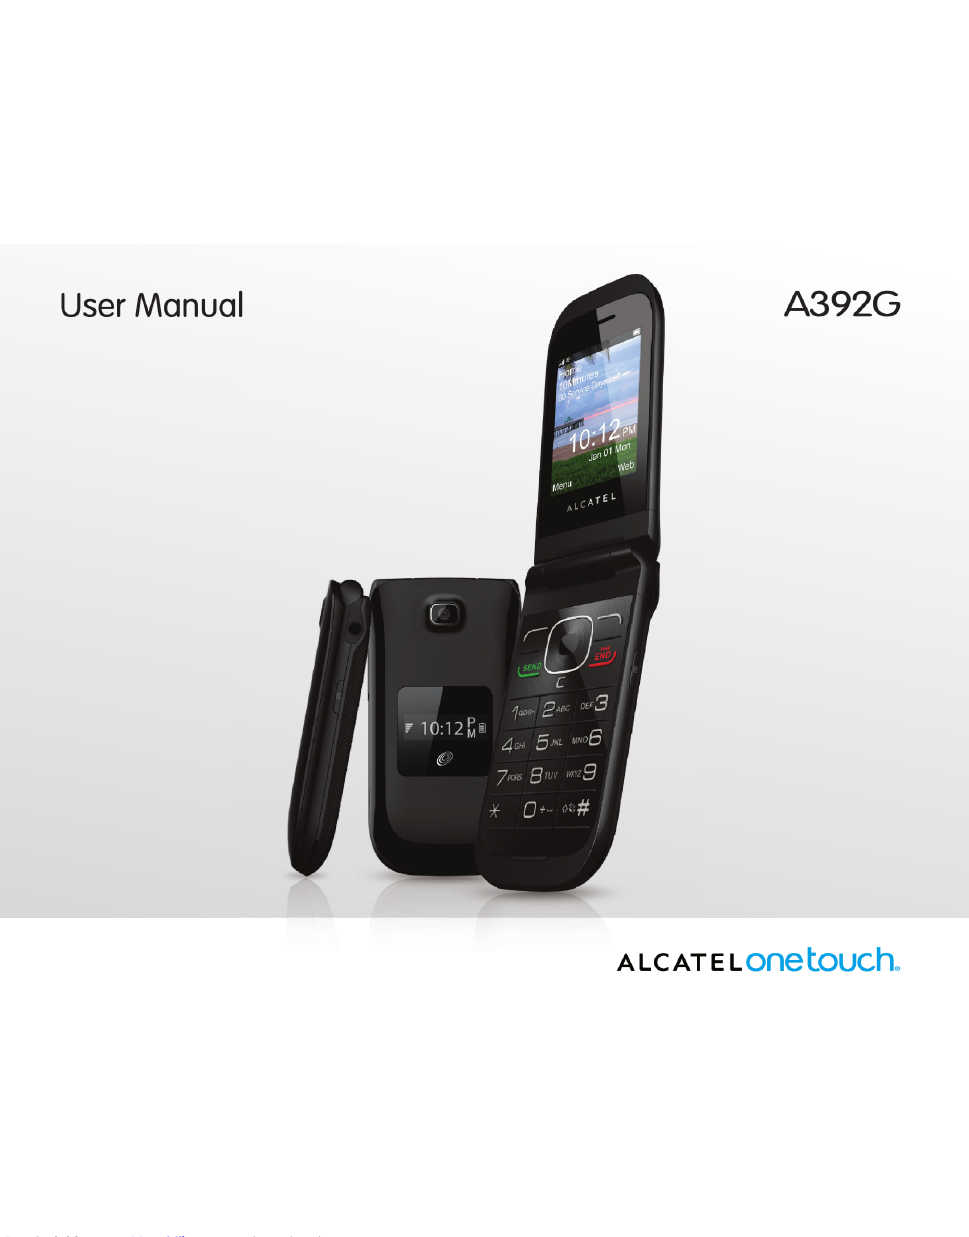 Alcatel A392G User Manual - Free PDF Download (51 Pages)